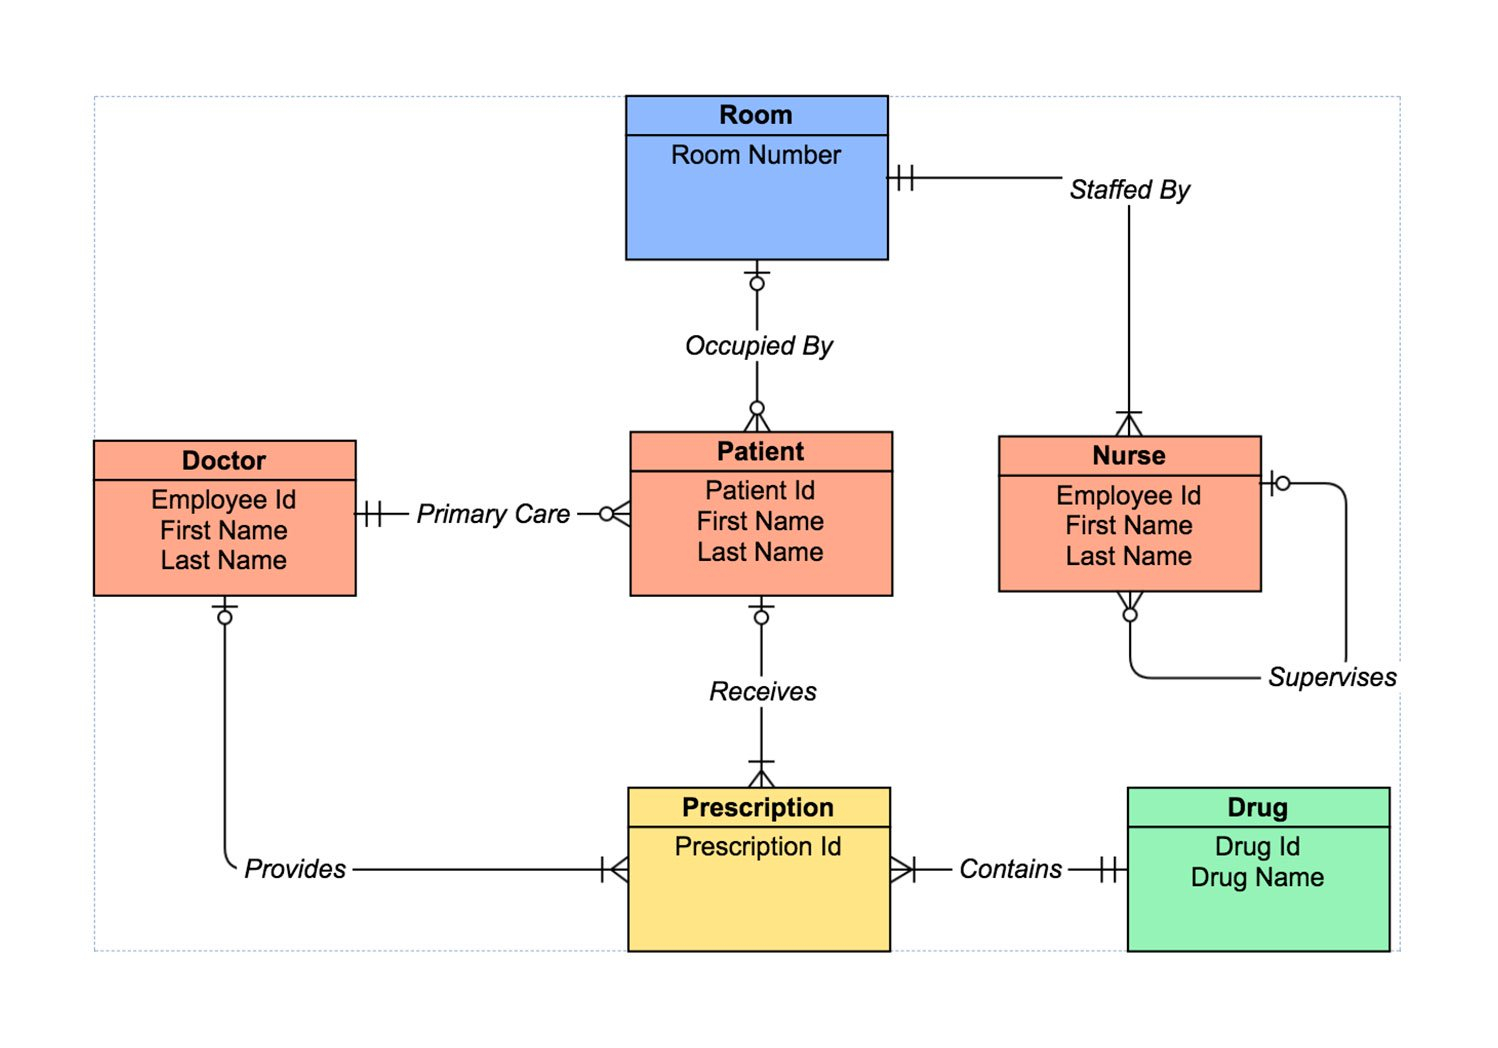 Er Diagram Tool | Draw Er Diagrams Online | Gliffy with regard to Entity Relationship Model Examples